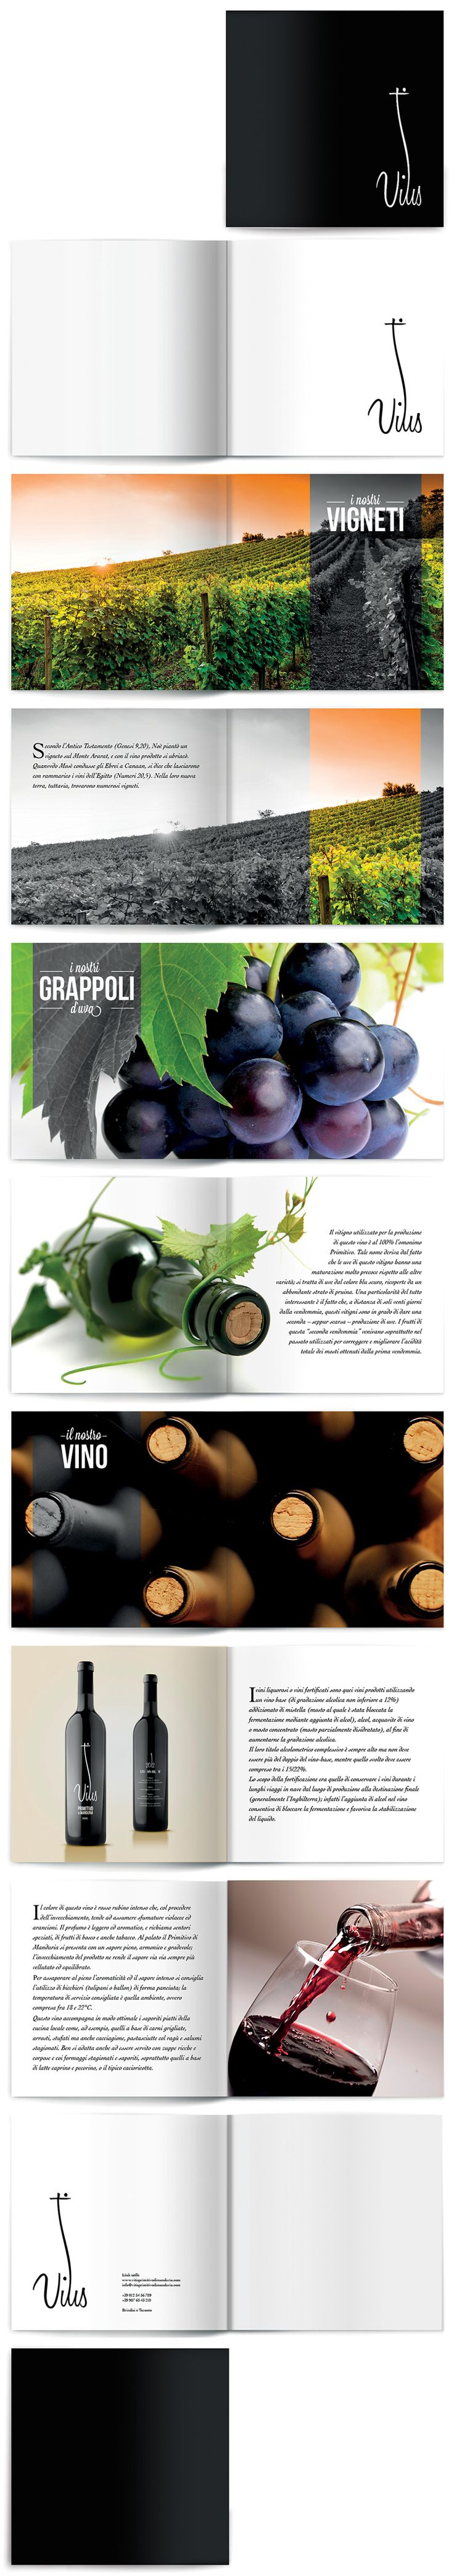 Brochure of wine. I love the design and simplicity of this brochure.